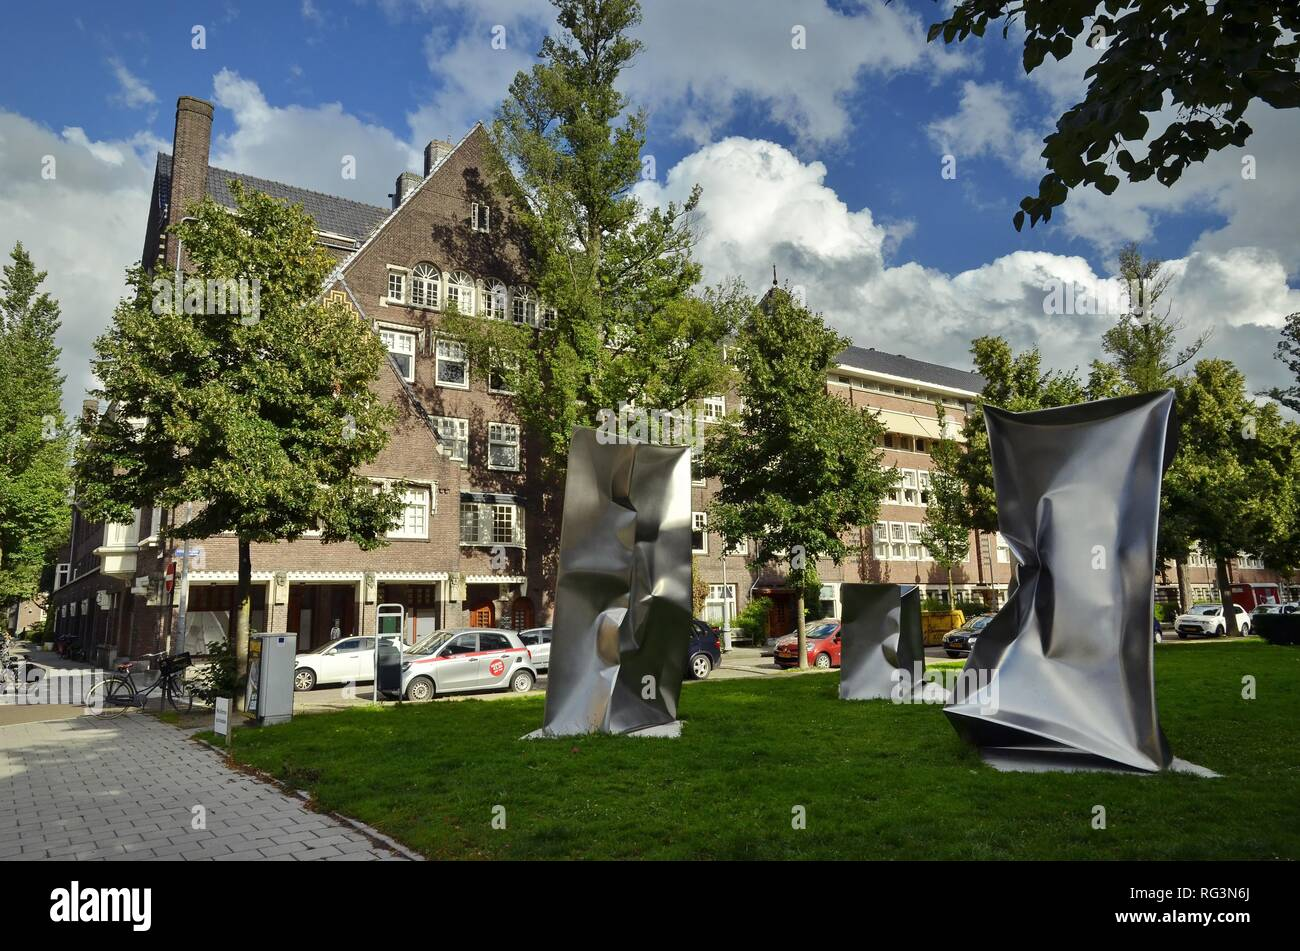 'Three of a kind' by Ewerdt Hilgemann on the Minervalaan, at the time of the Art Zuid annual outdoors event of modern art. - Stock Image